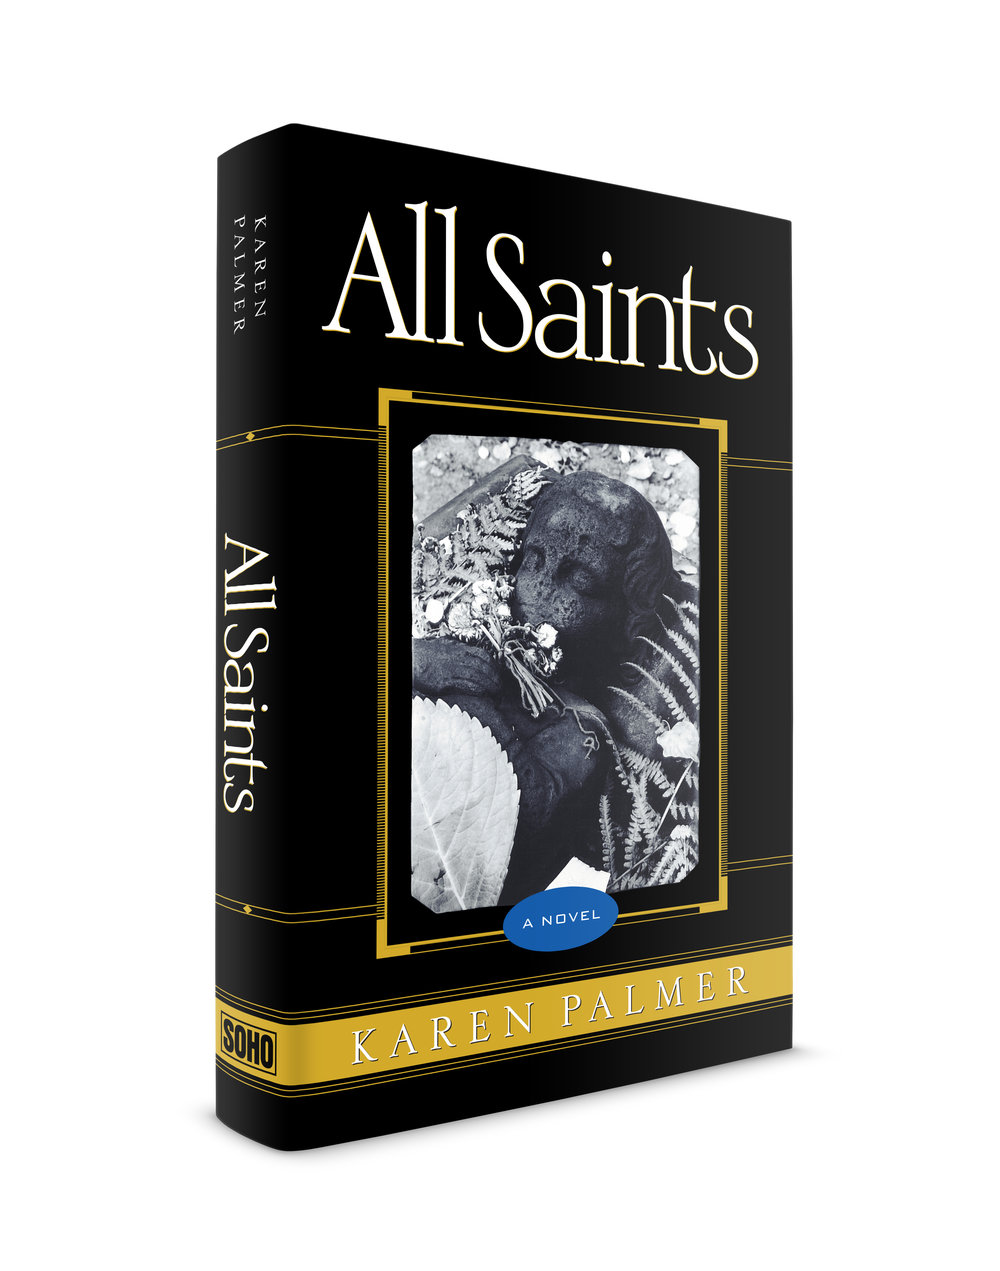 All Saints, a novel by  Karen Palmer . Published by Soho Press. This book was my first design project with Soho Press. I worked with  Juris Jurjevics  and Laura Hruska. Karen is one of my favorite Soho authors. This impressive volume weaves the tales of 3 individuals whose lives diverge in 1950s Louisiana. Harlan Dessonier, Glory Wiltz and Father Frank Doyle are characters that are as unique as their names. I created an intricate digital, gold grillwork that spanned both flaps, back cover, spine and front cover. The individual panels are connected by thin gold rules, the front cover framing a photograph by Josef Sudek of a grave in the Malá Strana Cemetery in Prague. The typeface with those beautiful details is Engravers Classic by Dennis Ortiz-Lopez.